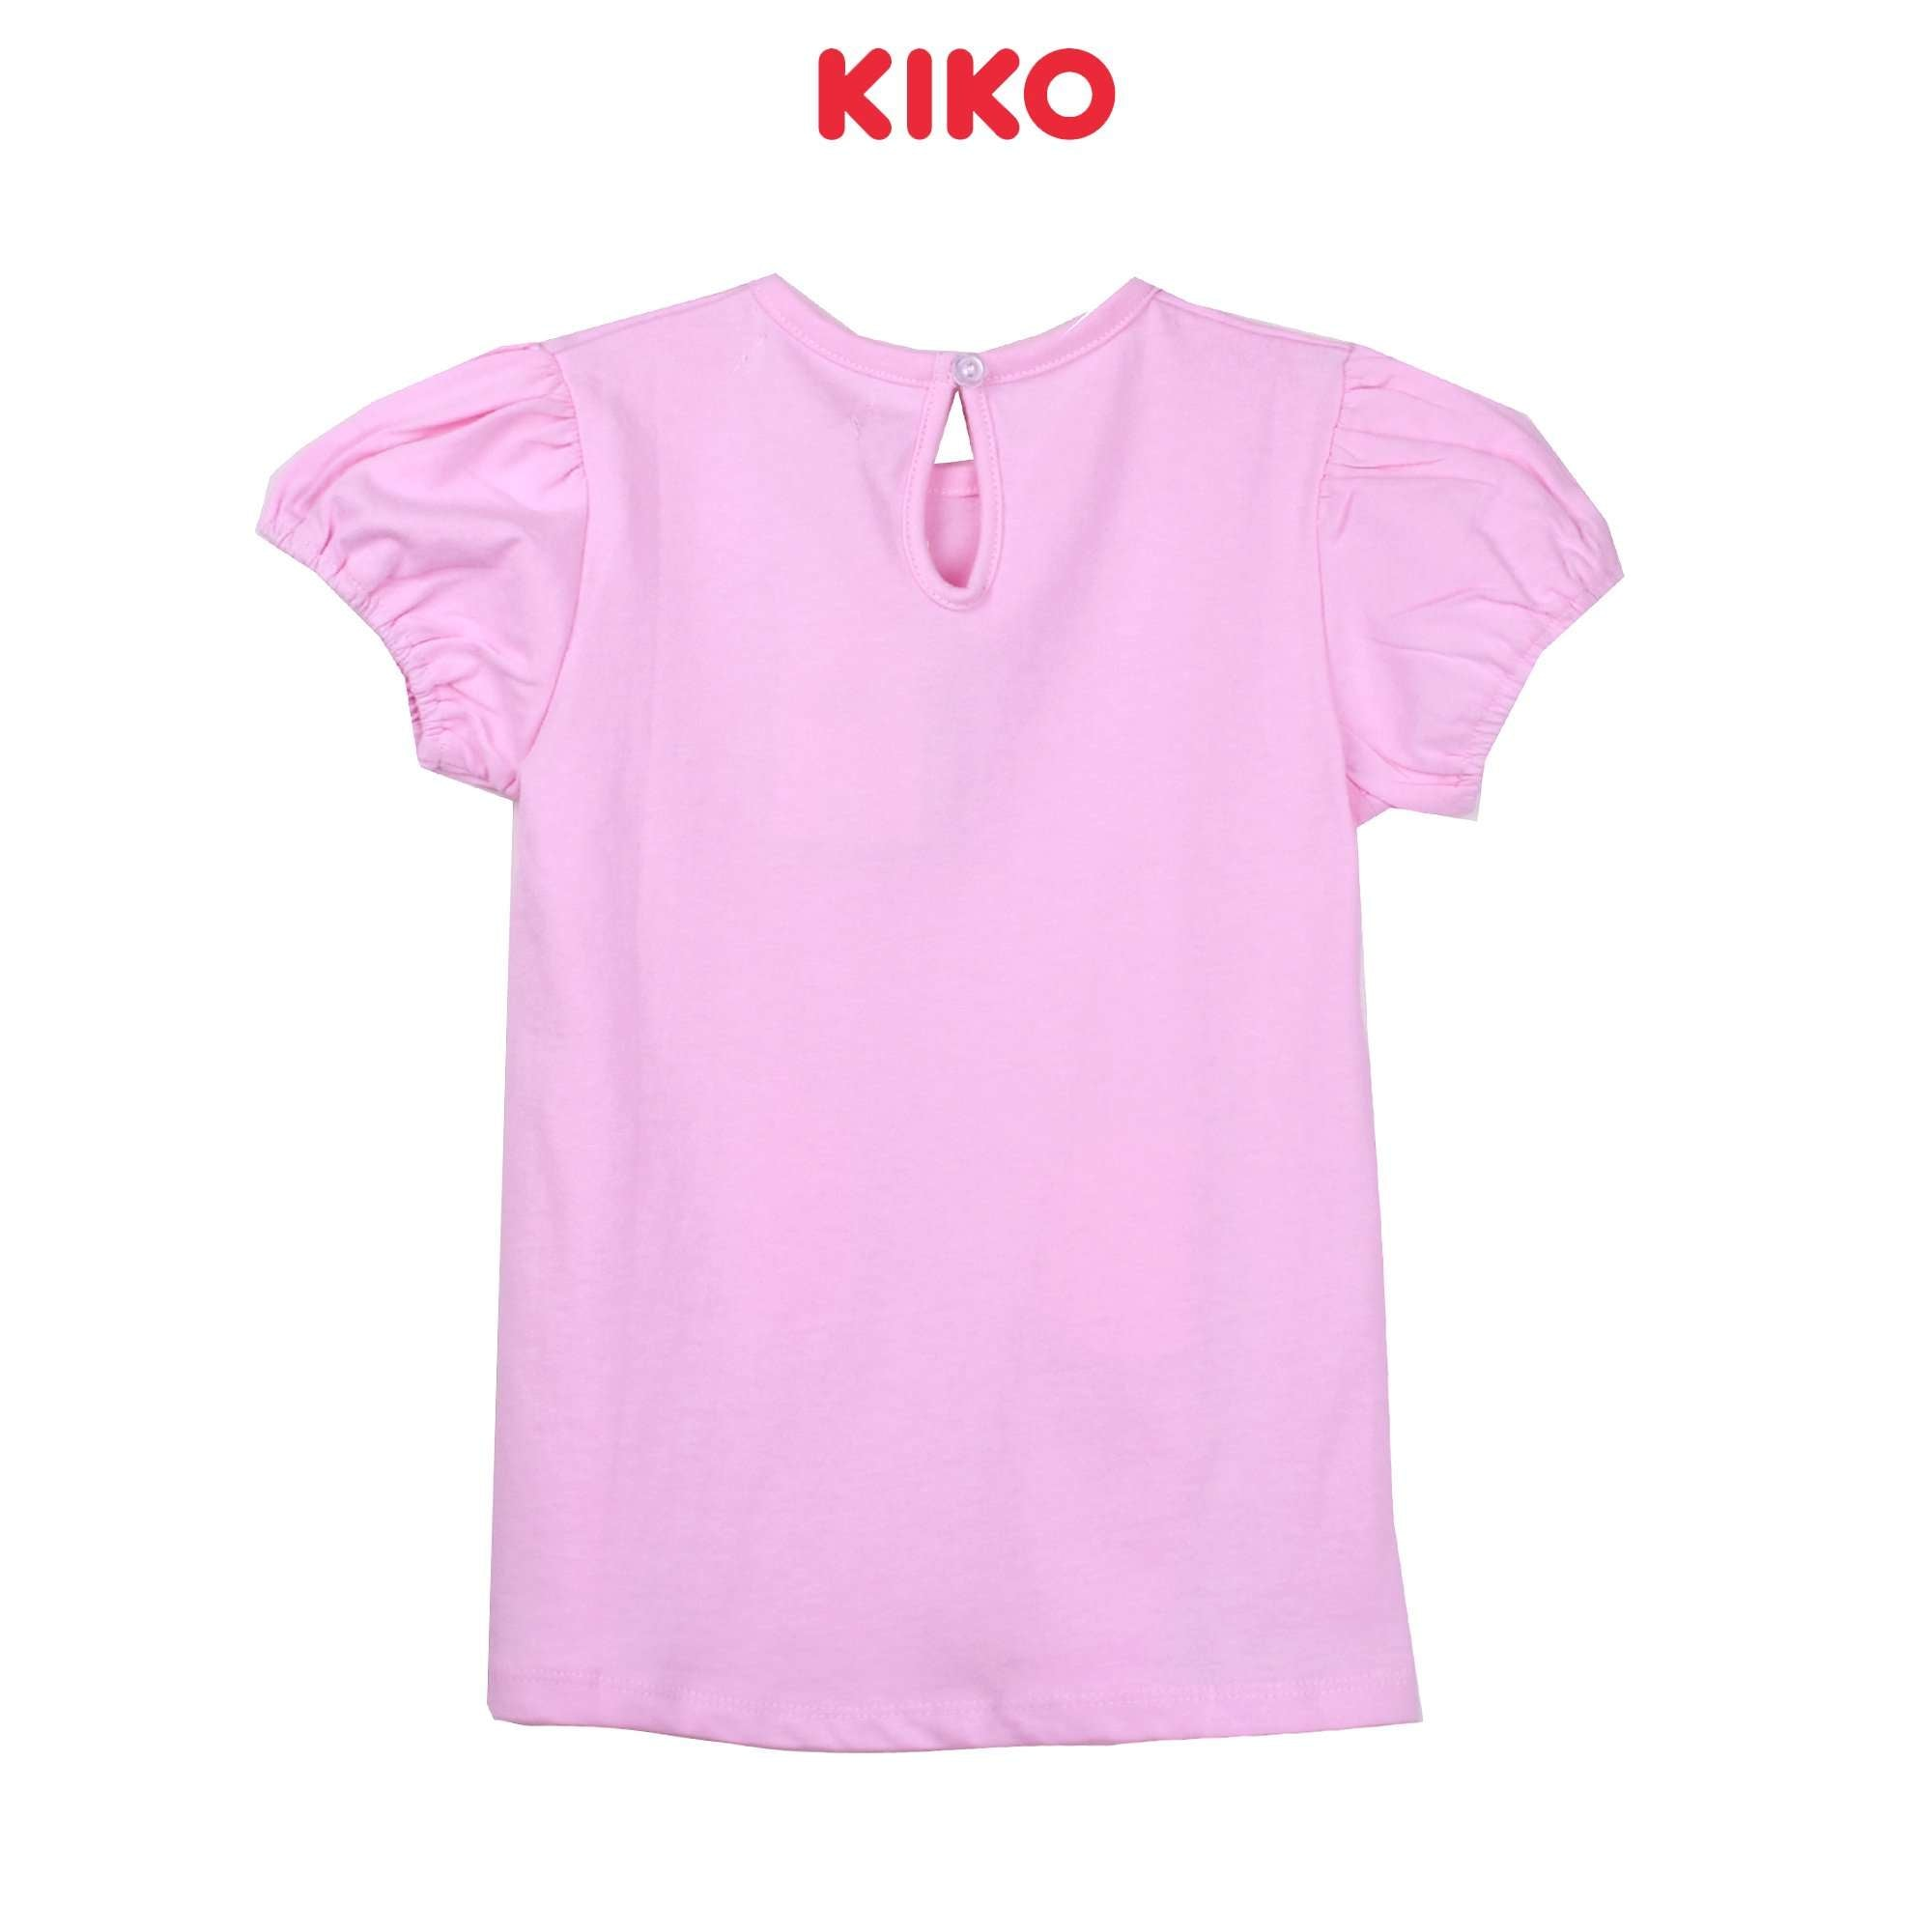 KIKO Girl Short Sleeve Blouse - Pink K925103-1139-P5 : Buy KIKO online at CMG.MY